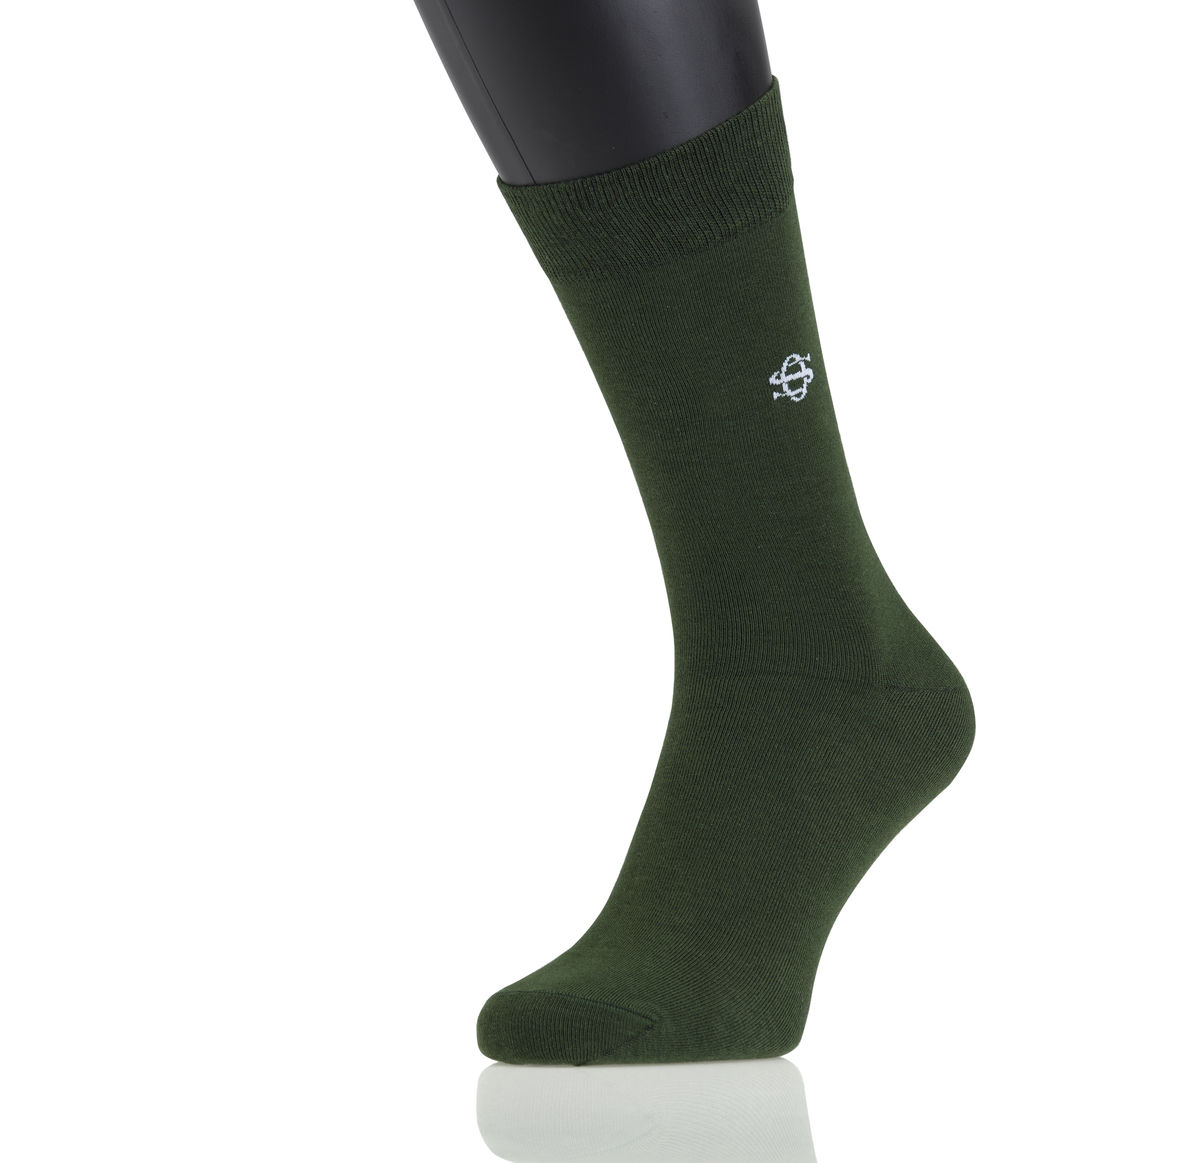 Owen Smith Heren Sokken Dark Green 43-46 (2 paar)